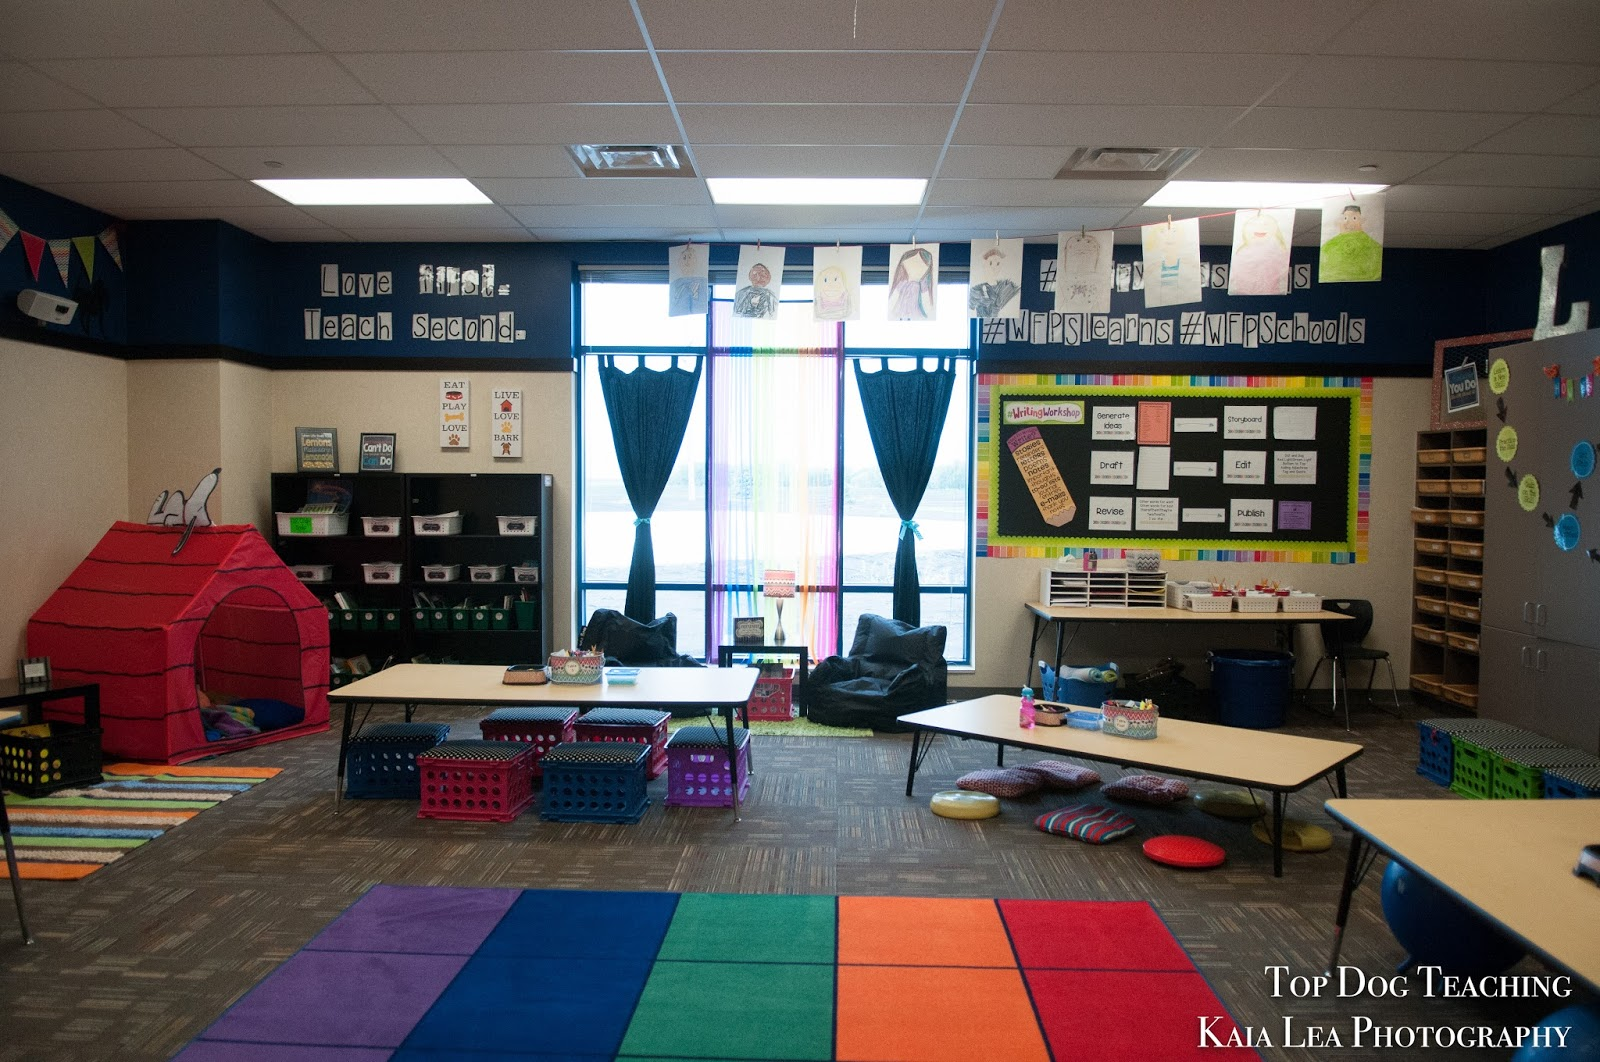 List Of Classroom Furnitures : Top dog teaching classroom design inspiration